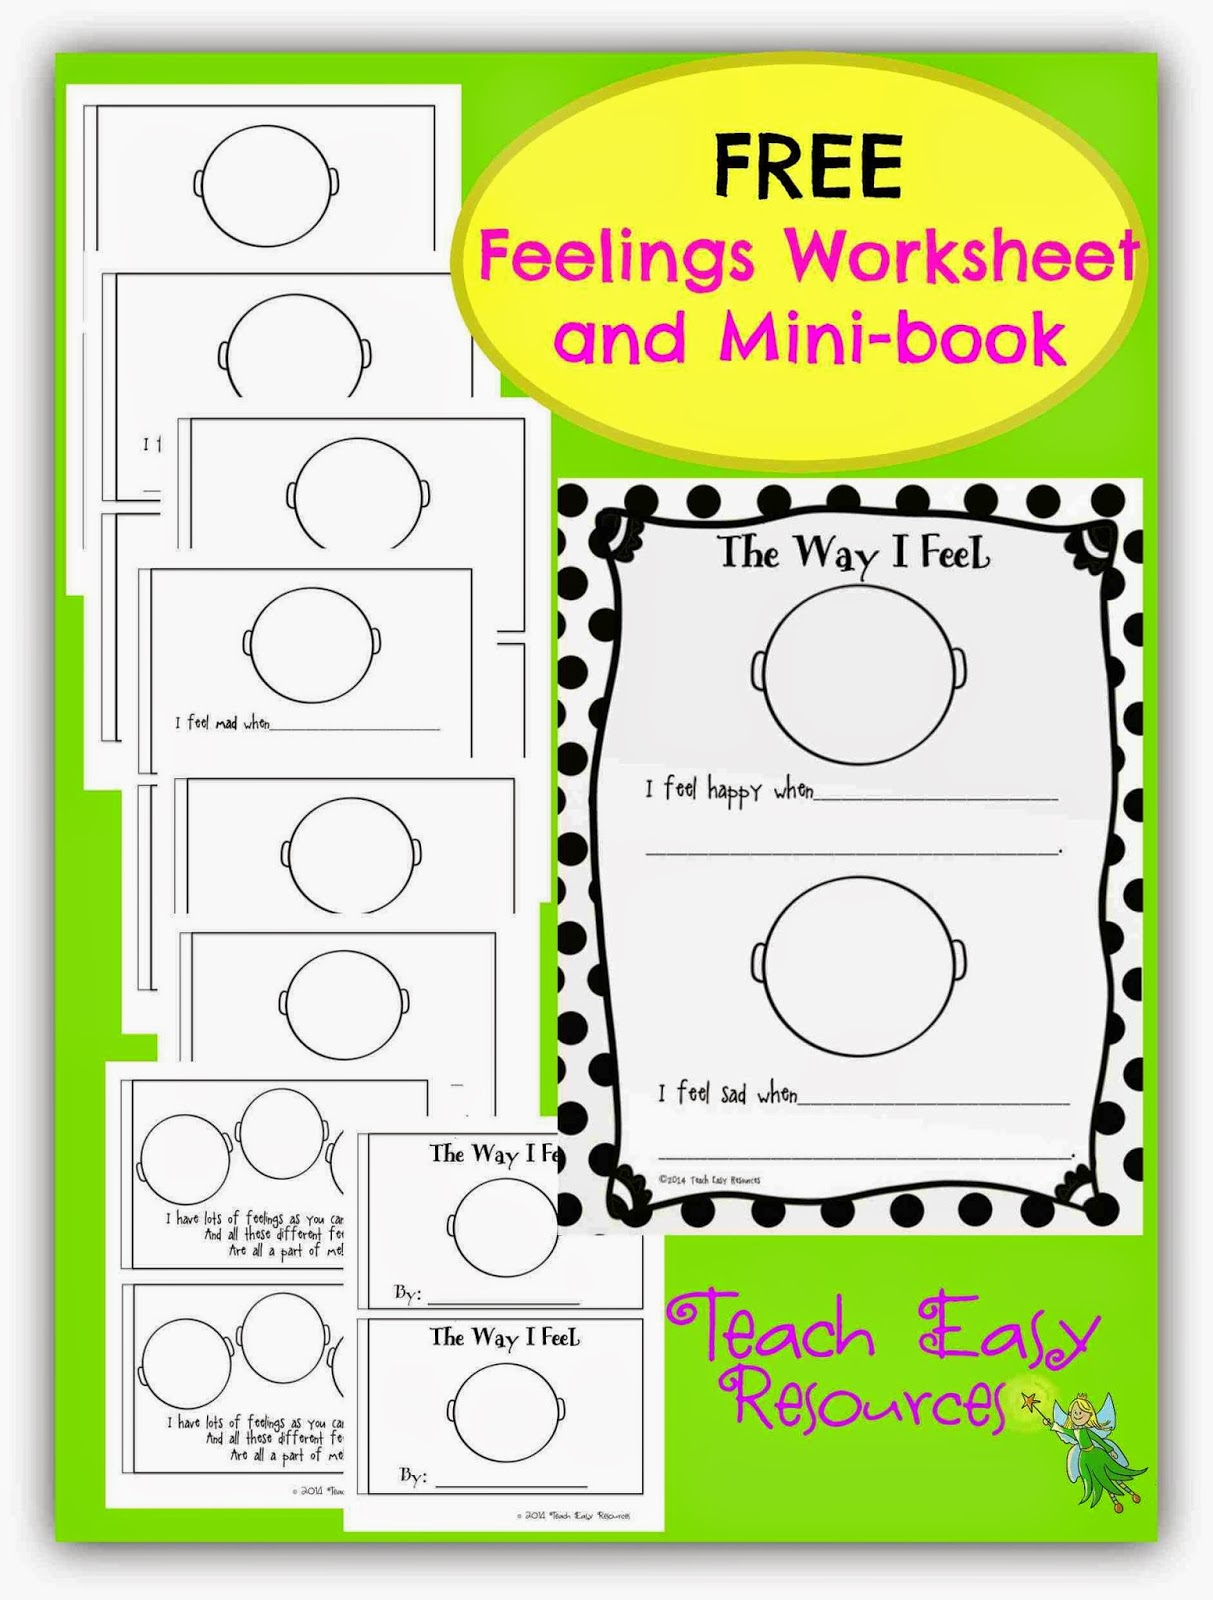 worksheet Feelings Worksheets classroom freebies too feelings worksheet and mini book for pre k if you think this resource set could be useful to you